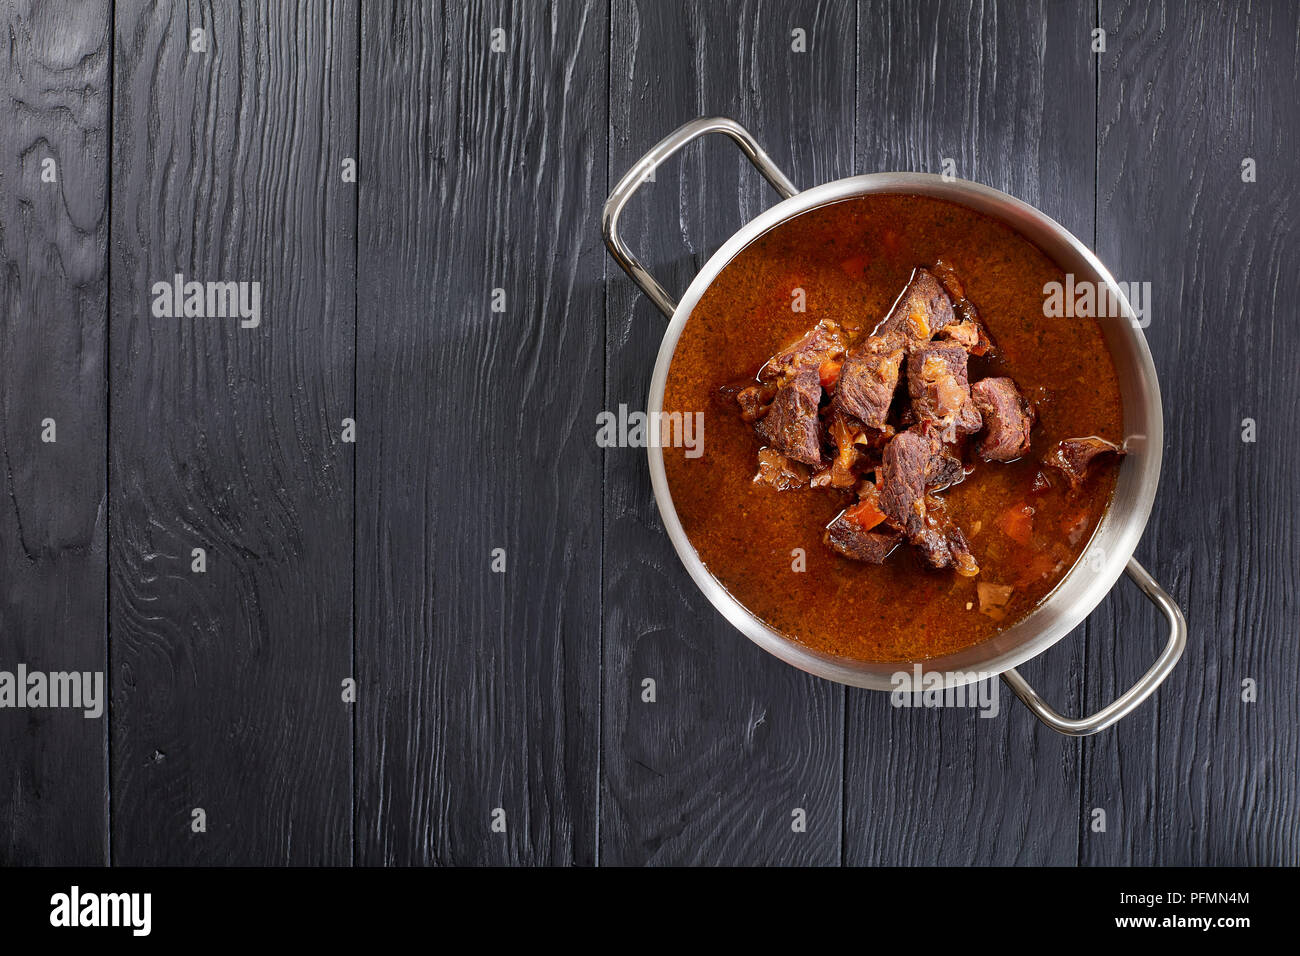 homemade hot Czech beef goulash in a stainless pan on black wooden table, view from above - Stock Image